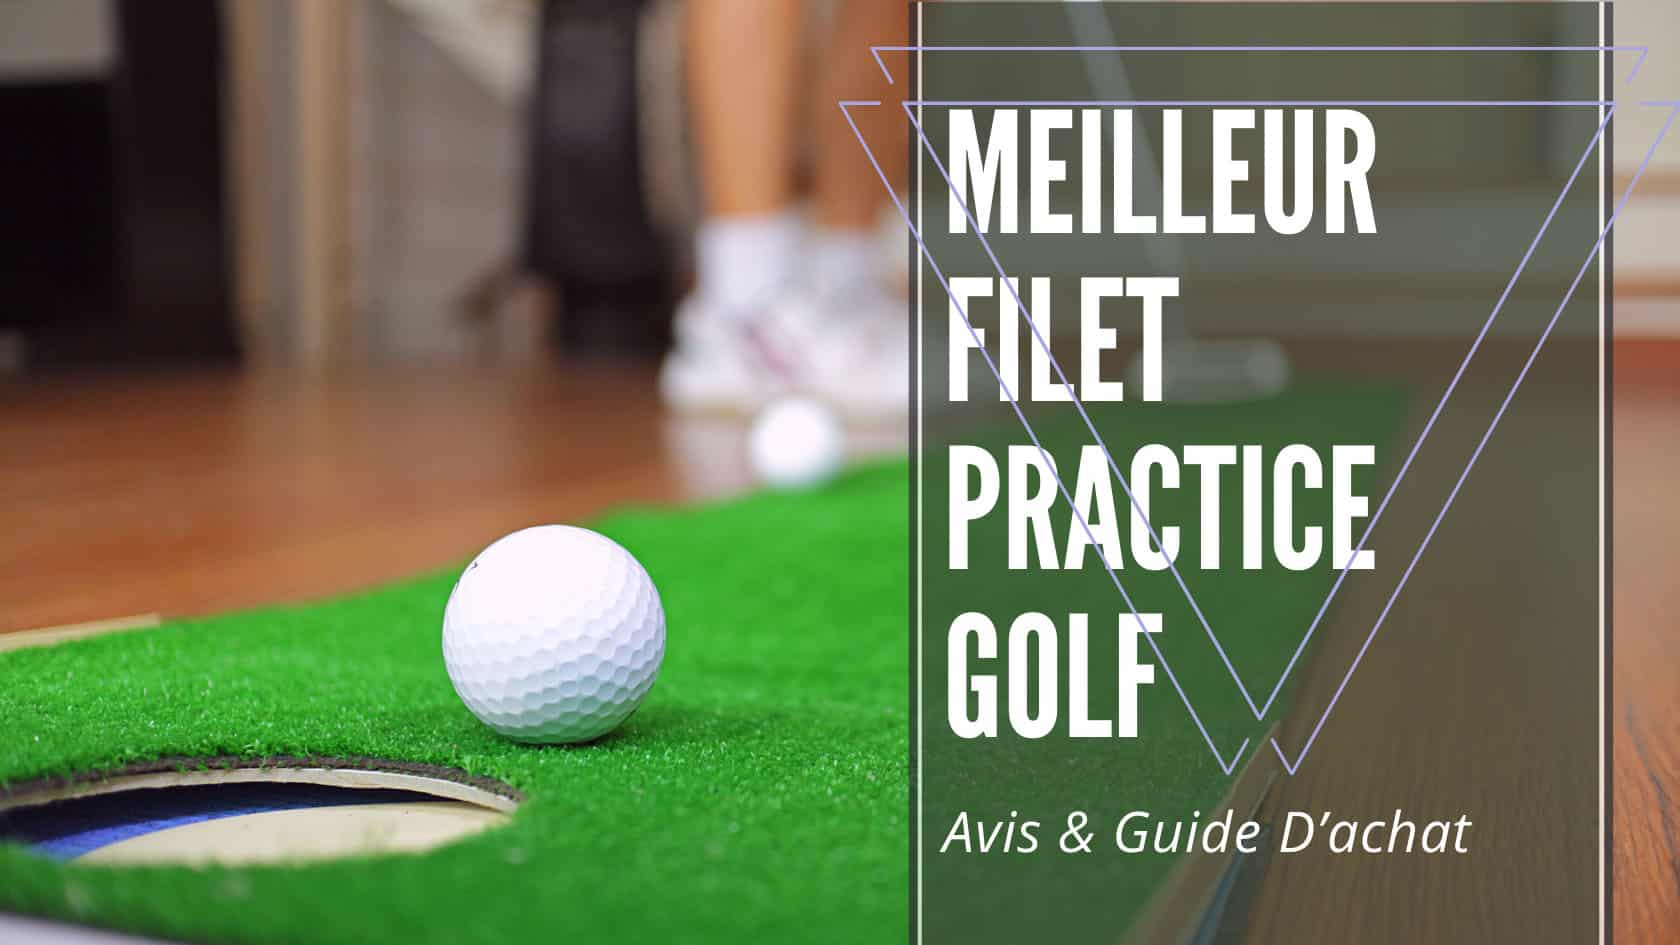 Meilleur Filet Practice Golf